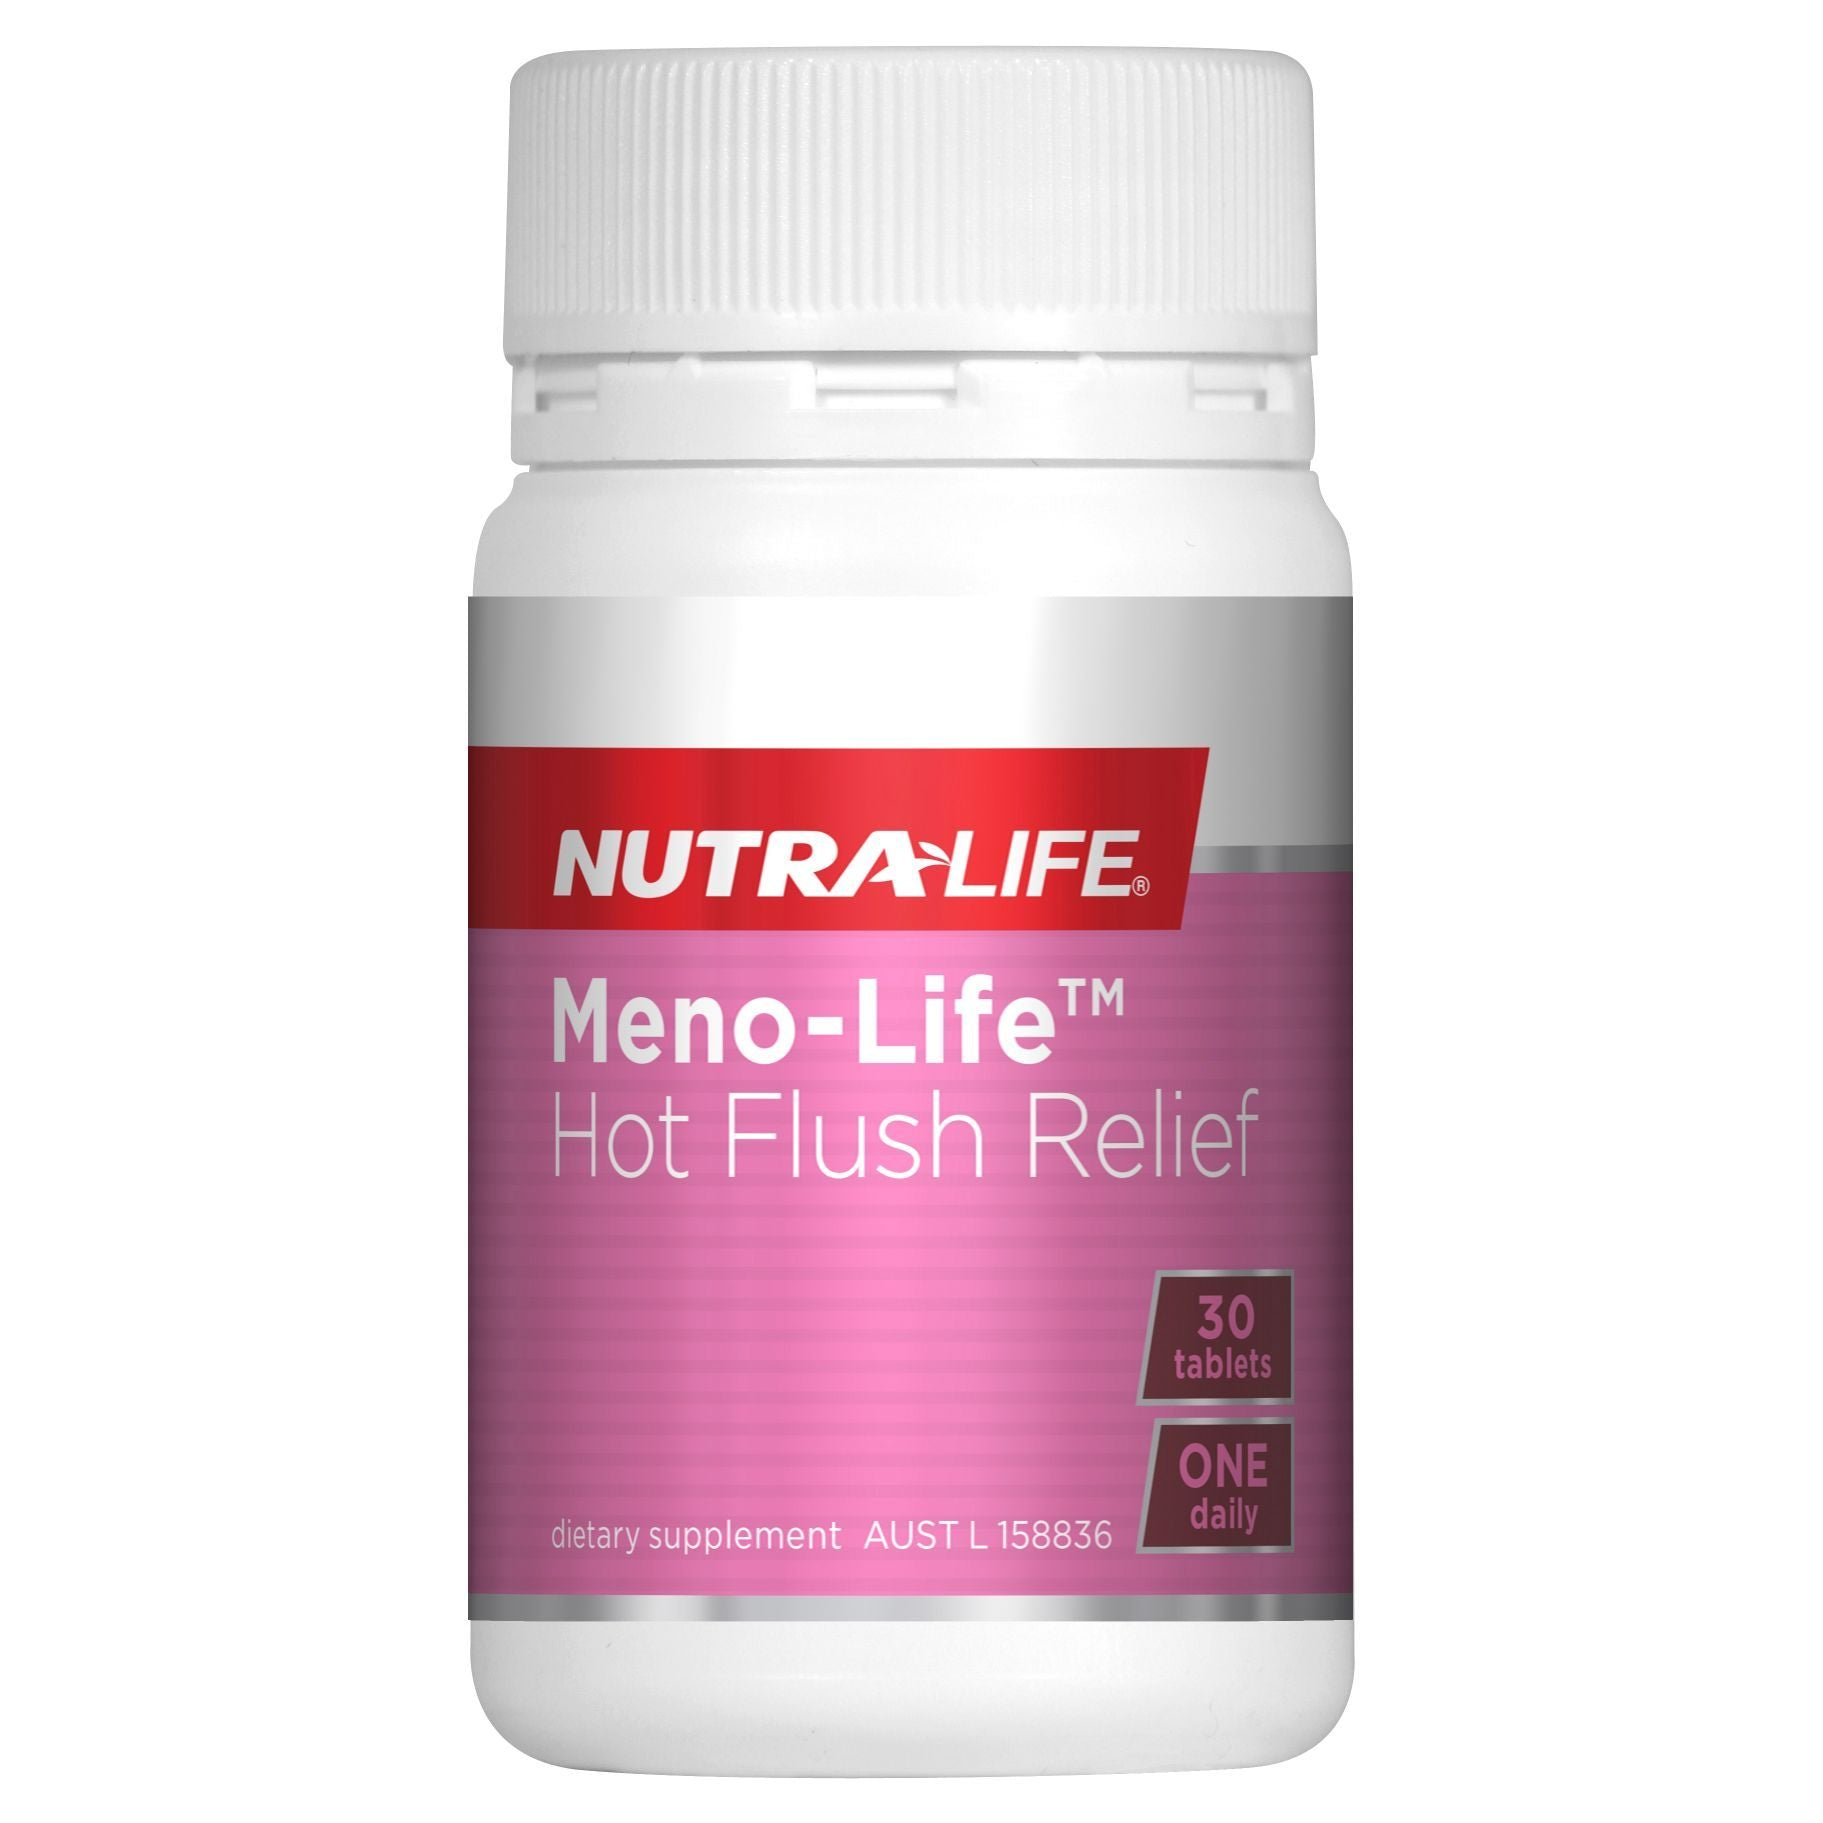 NUTRA-LIFE MENO-LIFE HOT FLUSH RELIEF 30T